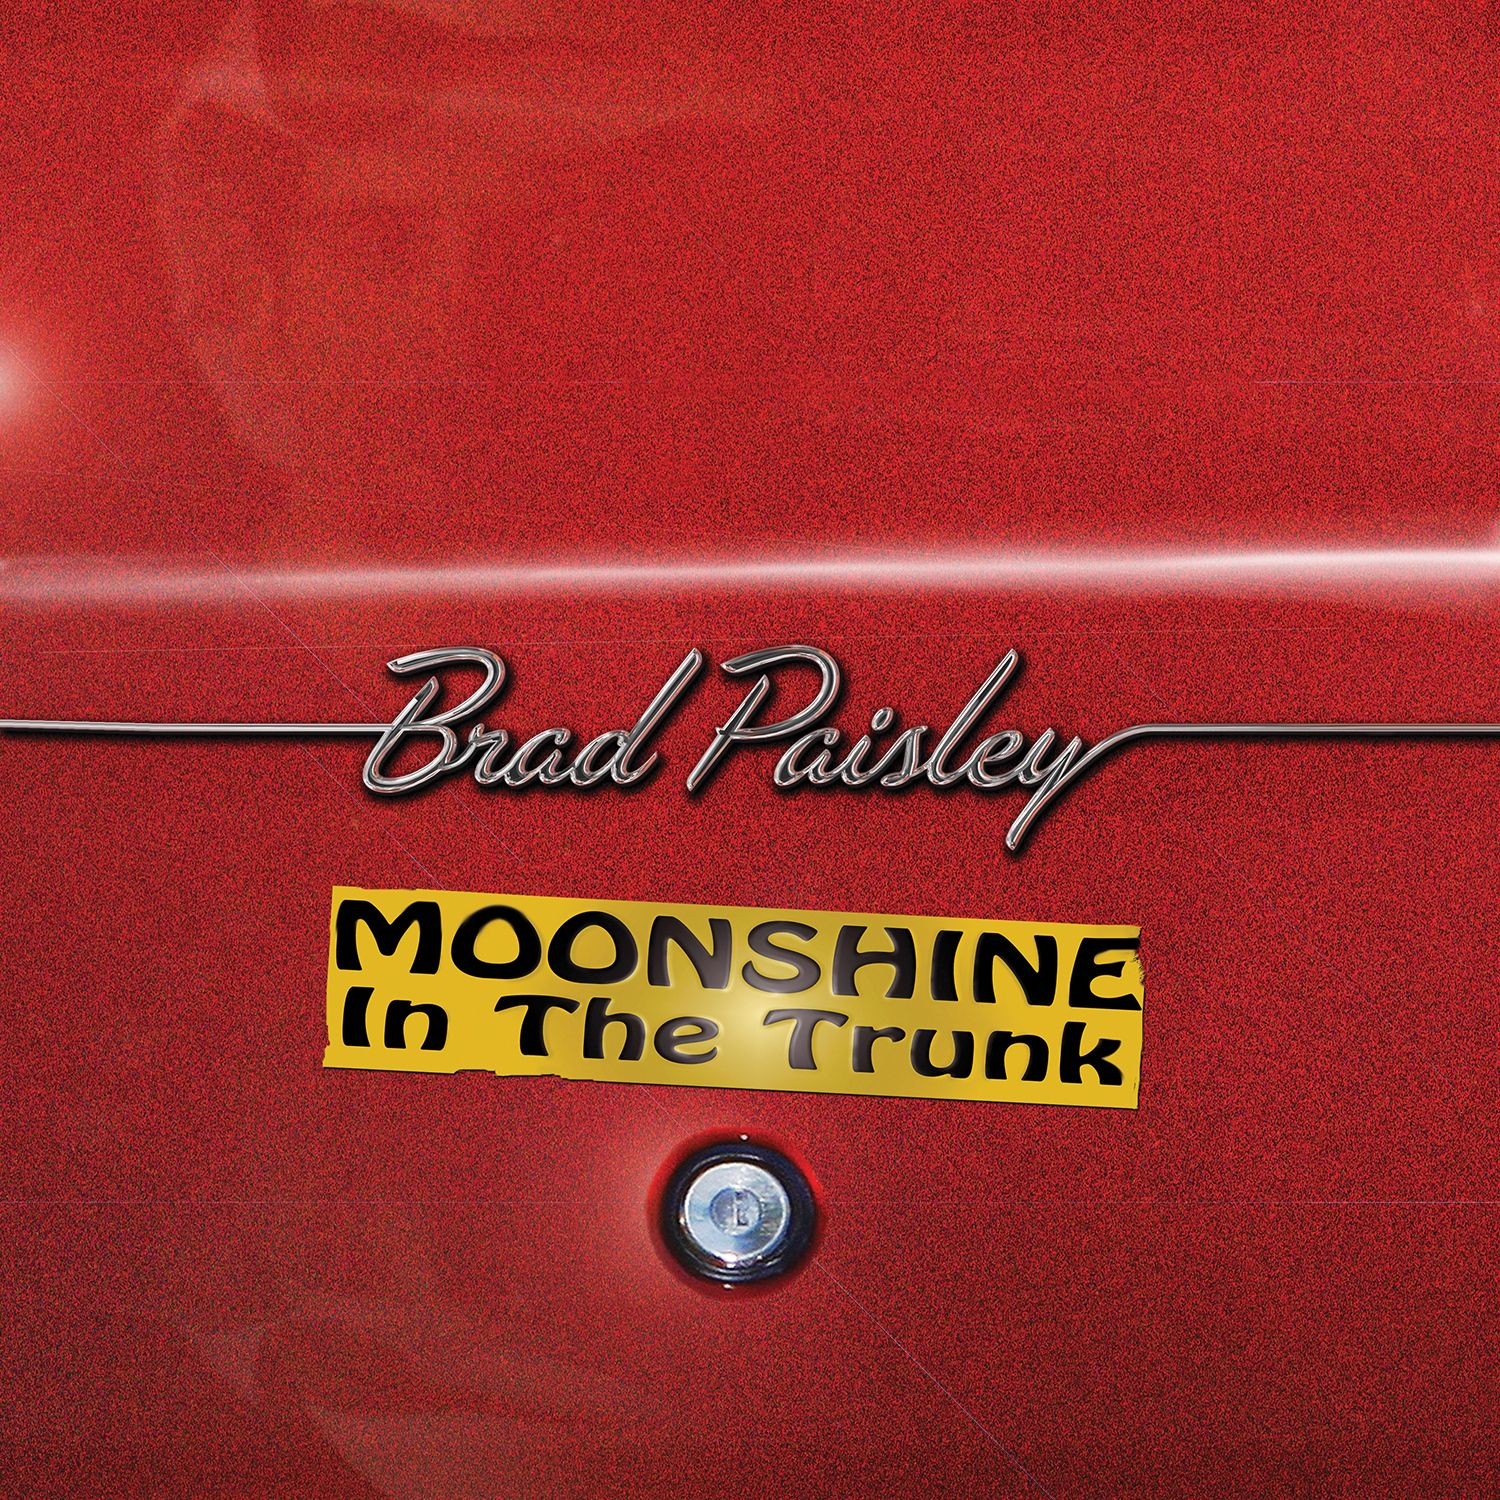 brad paisley moonshine in the trunk album cover